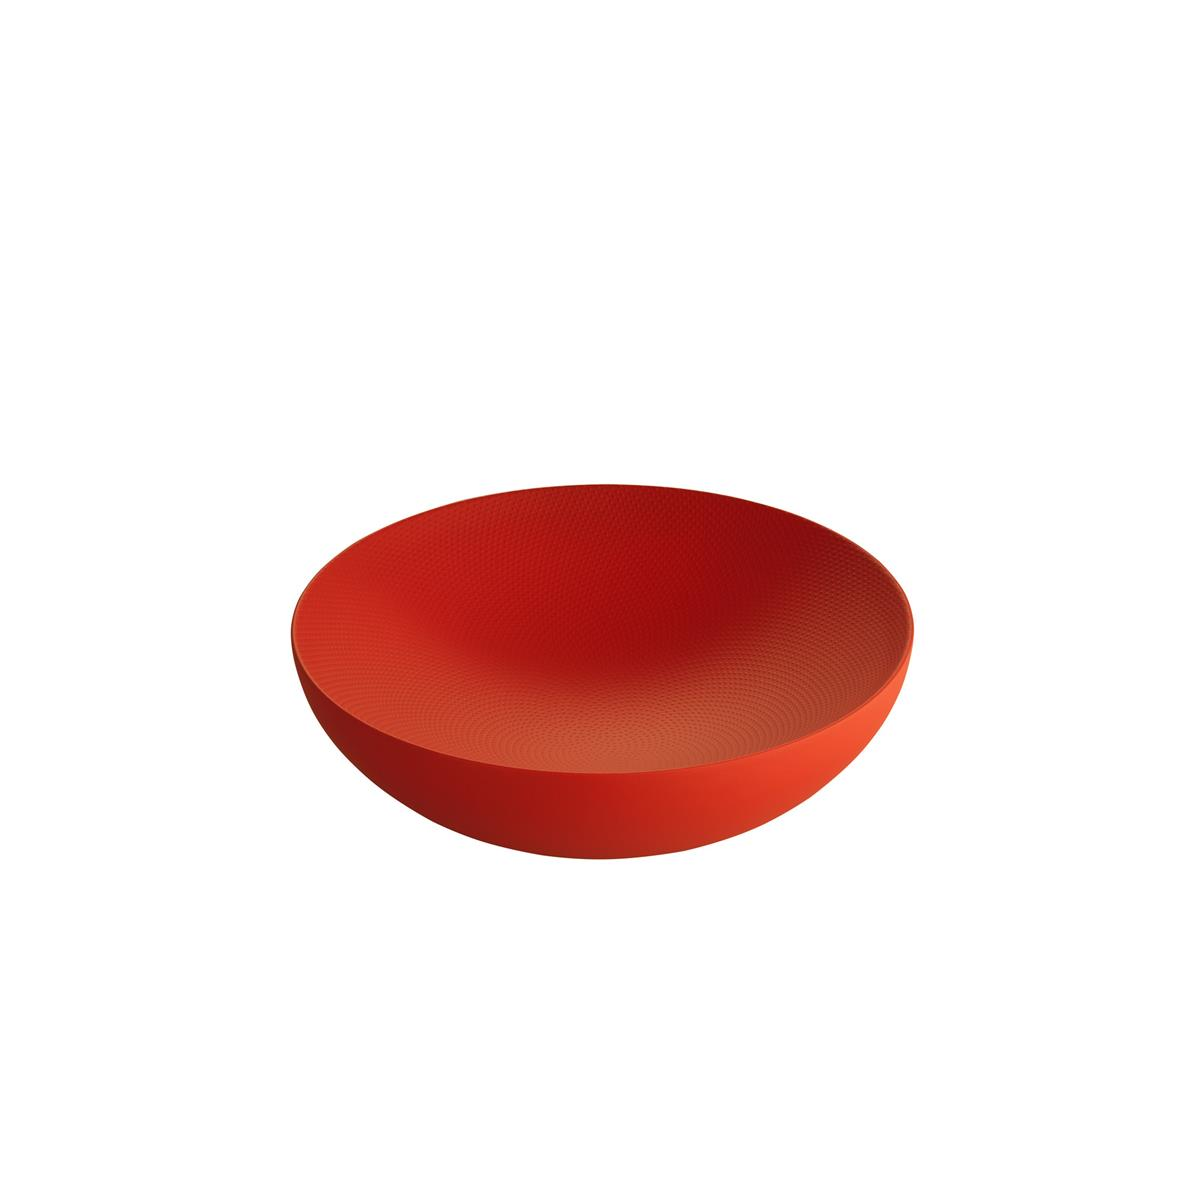 Alessi-Double Double-walled bowl in colored steel and resin, red with relief decoration